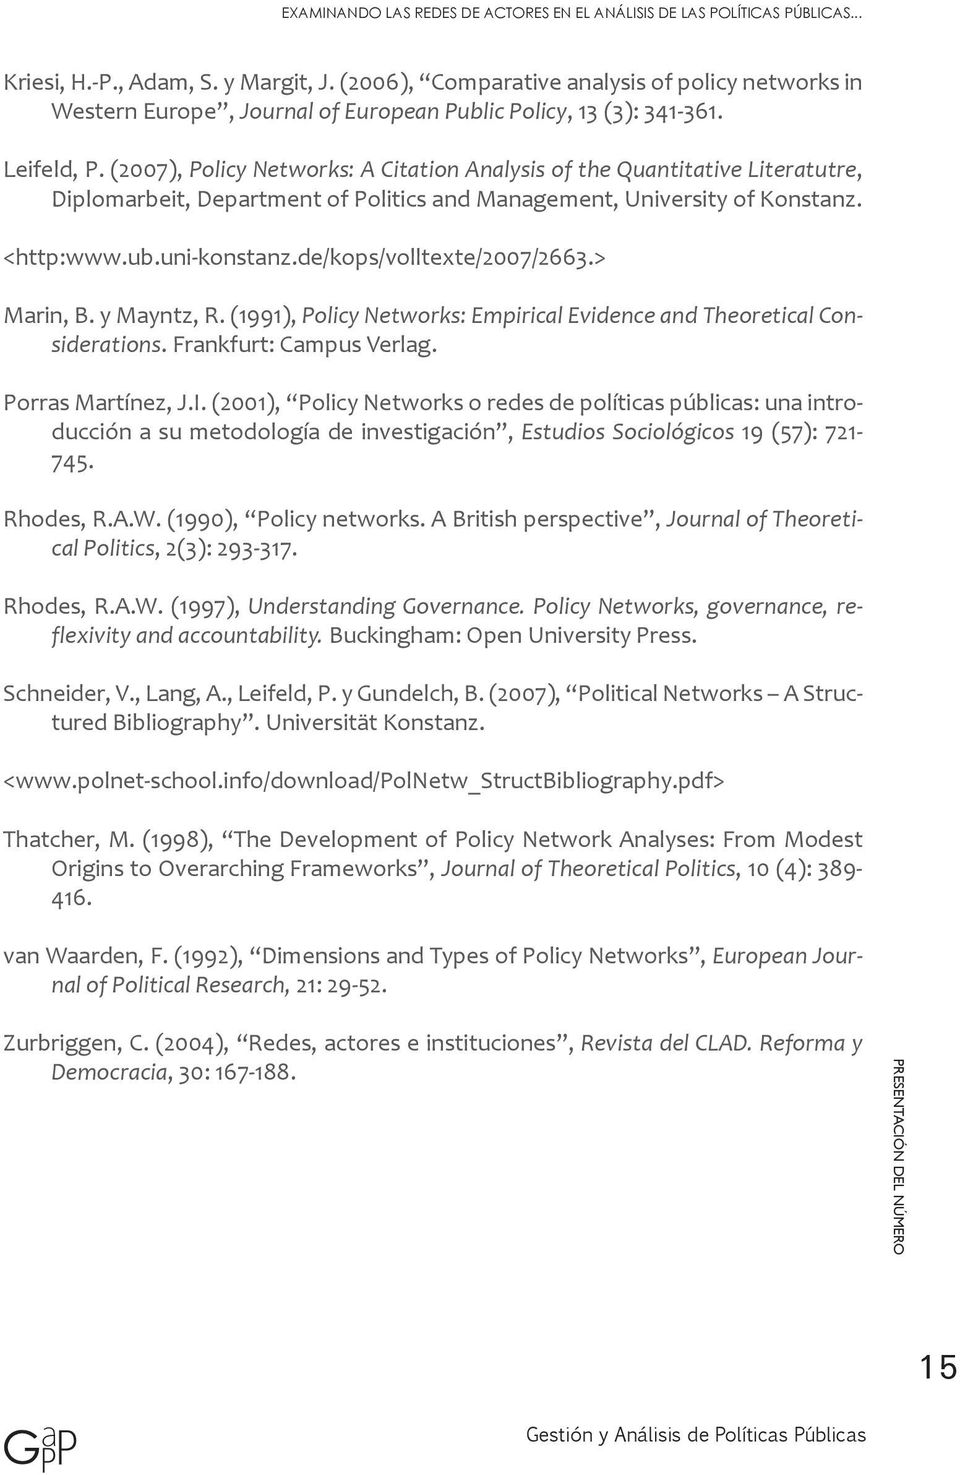 (2007), Policy Networks: A Citation Analysis of the Quantitative Literatutre, Diplomarbeit, Department of Politics and Management, University of Konstanz. <http:www.ub.uni-konstanz.